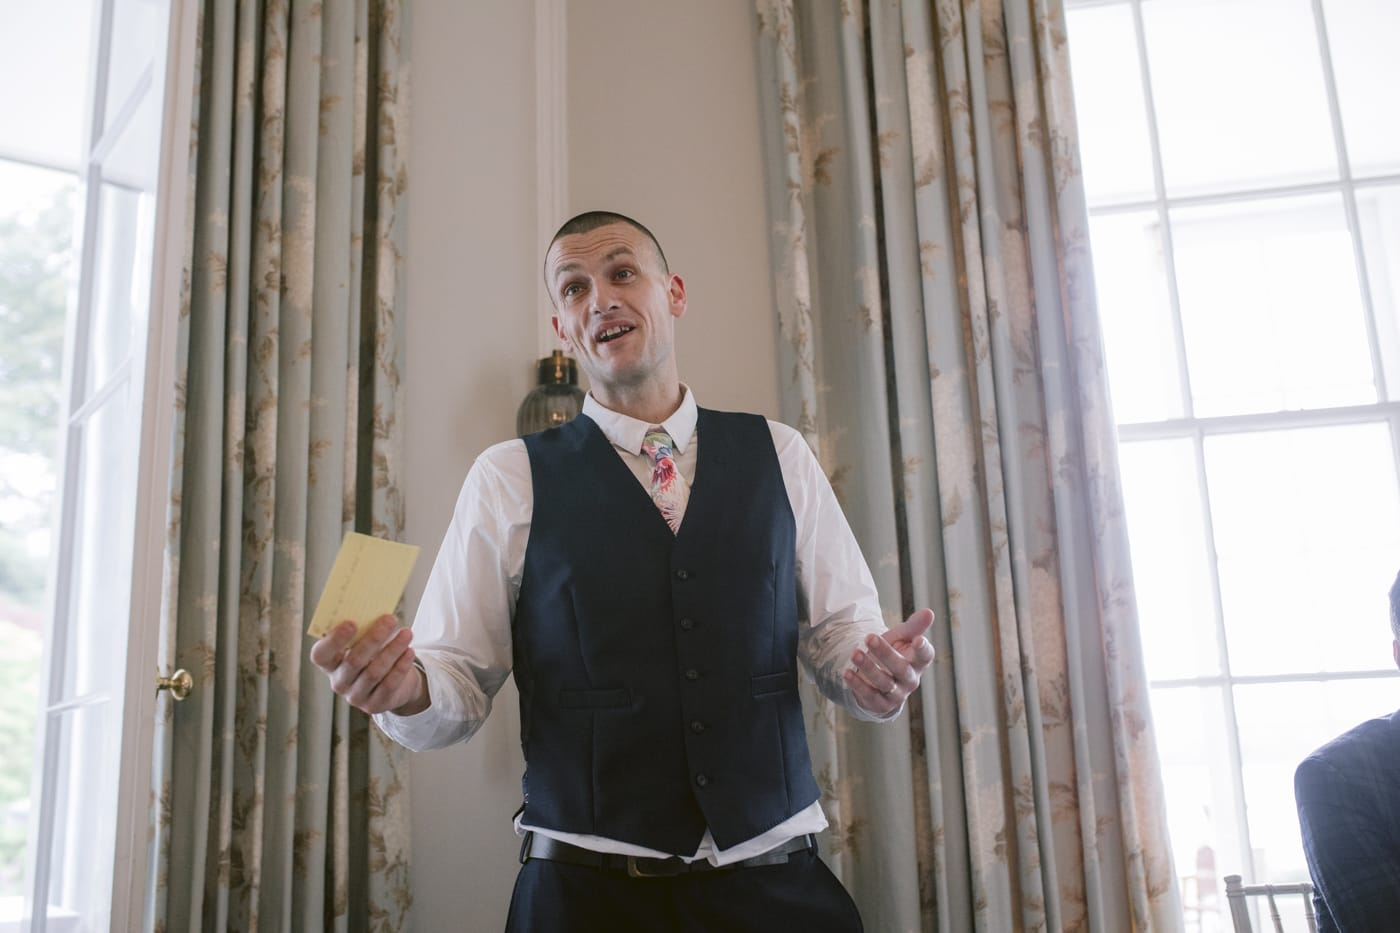 Guest Open Arms Wedding Speech at Storrs Hall Wedding